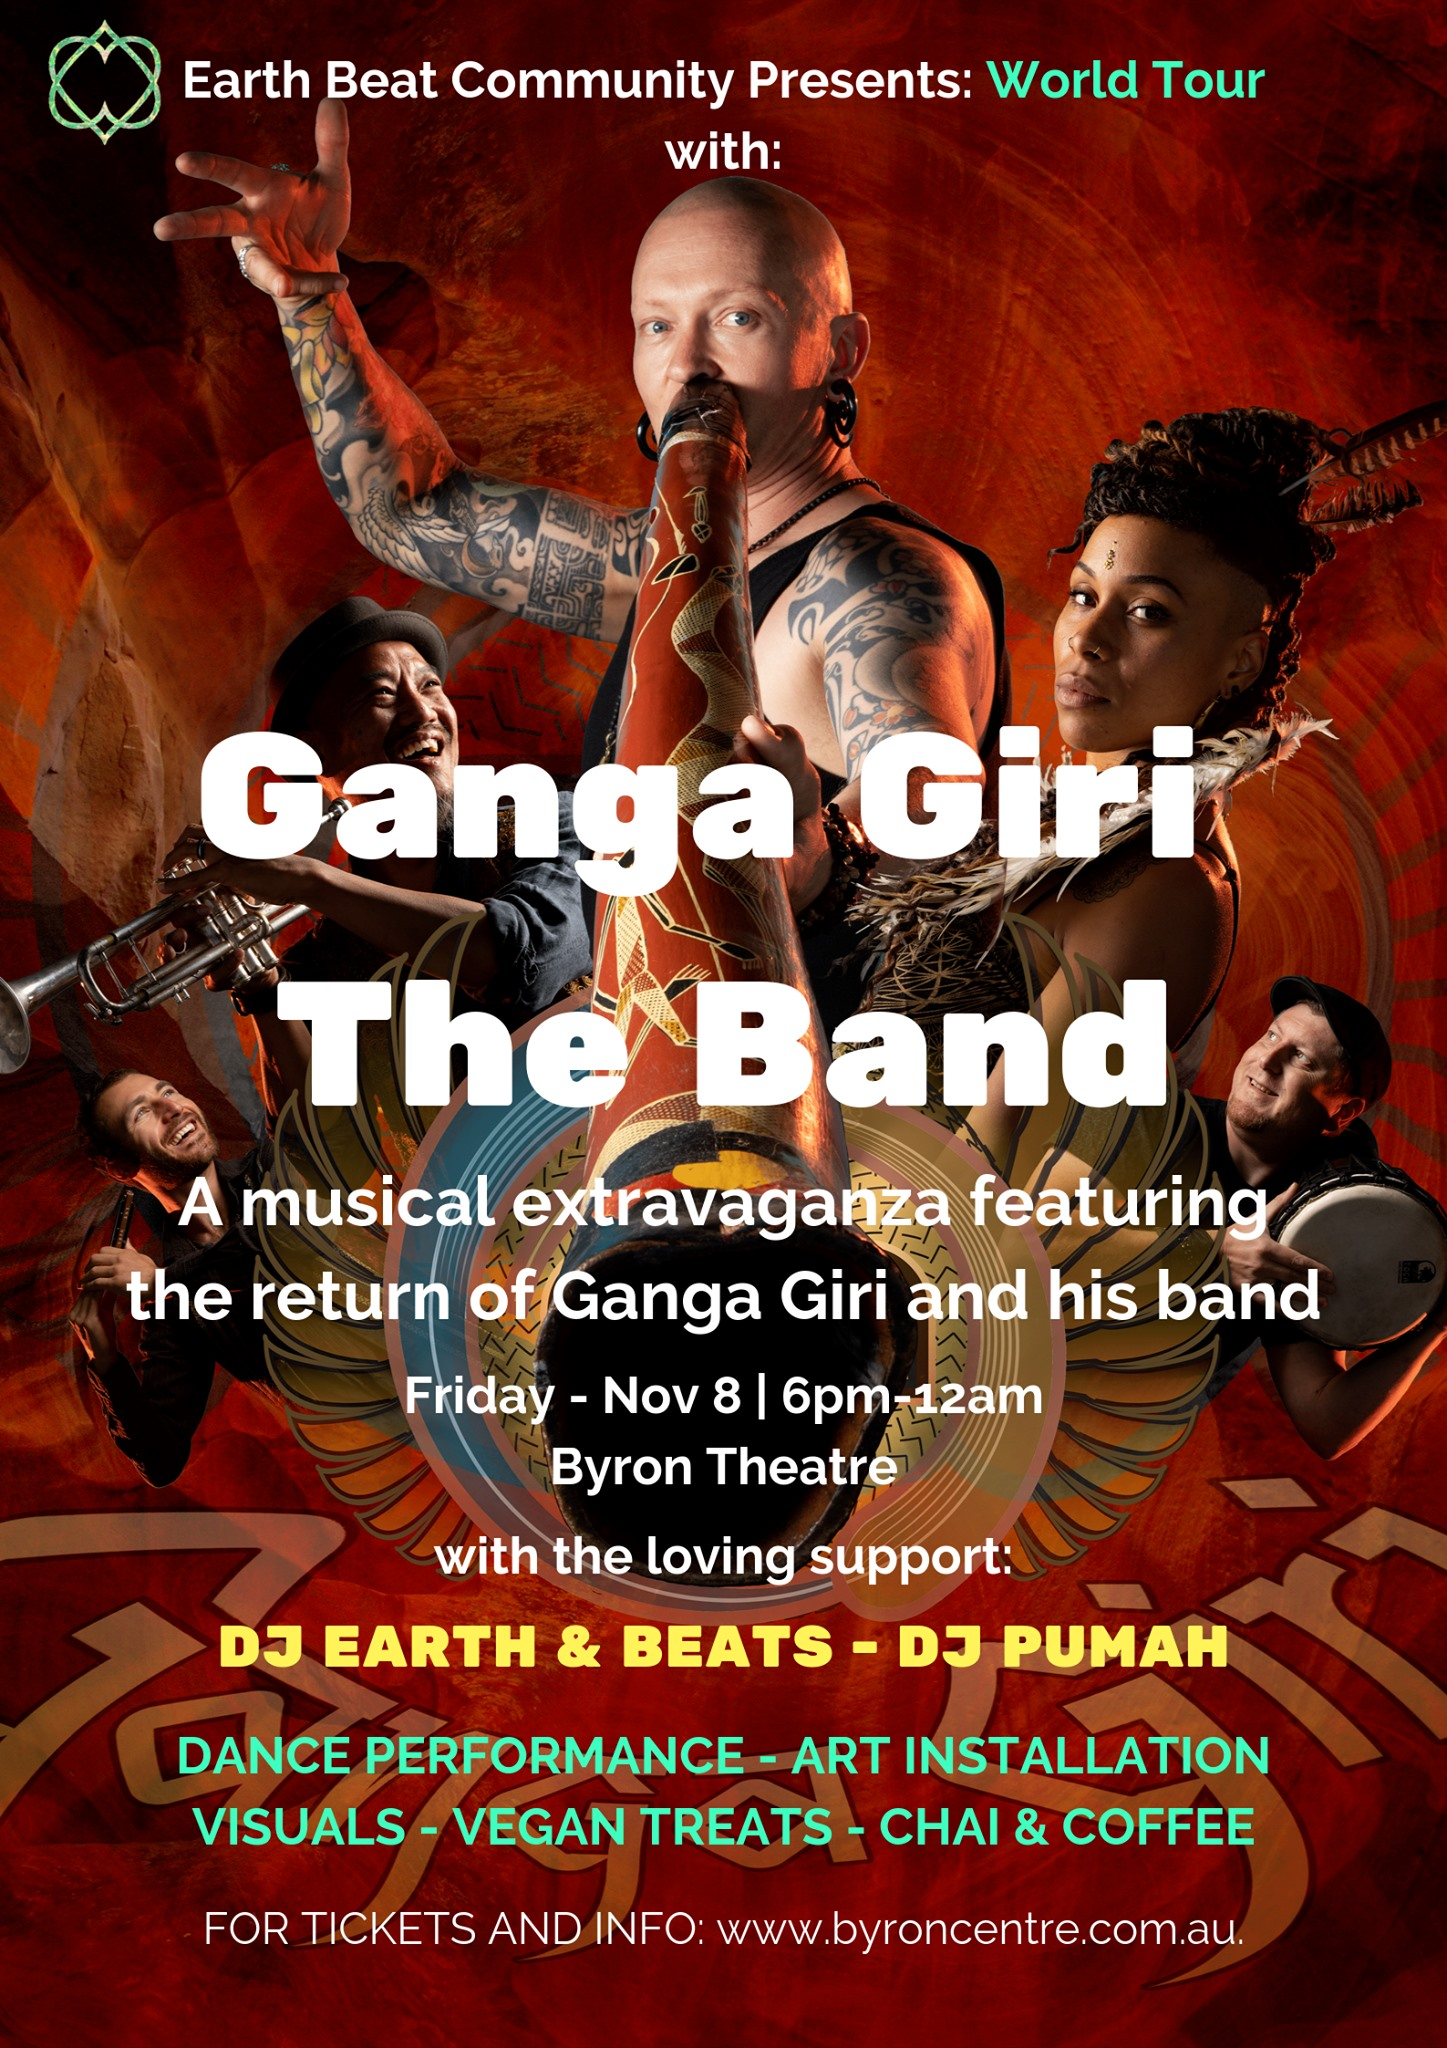 World Tour with GANGA GIRI BAND presented by Earth Beat Community